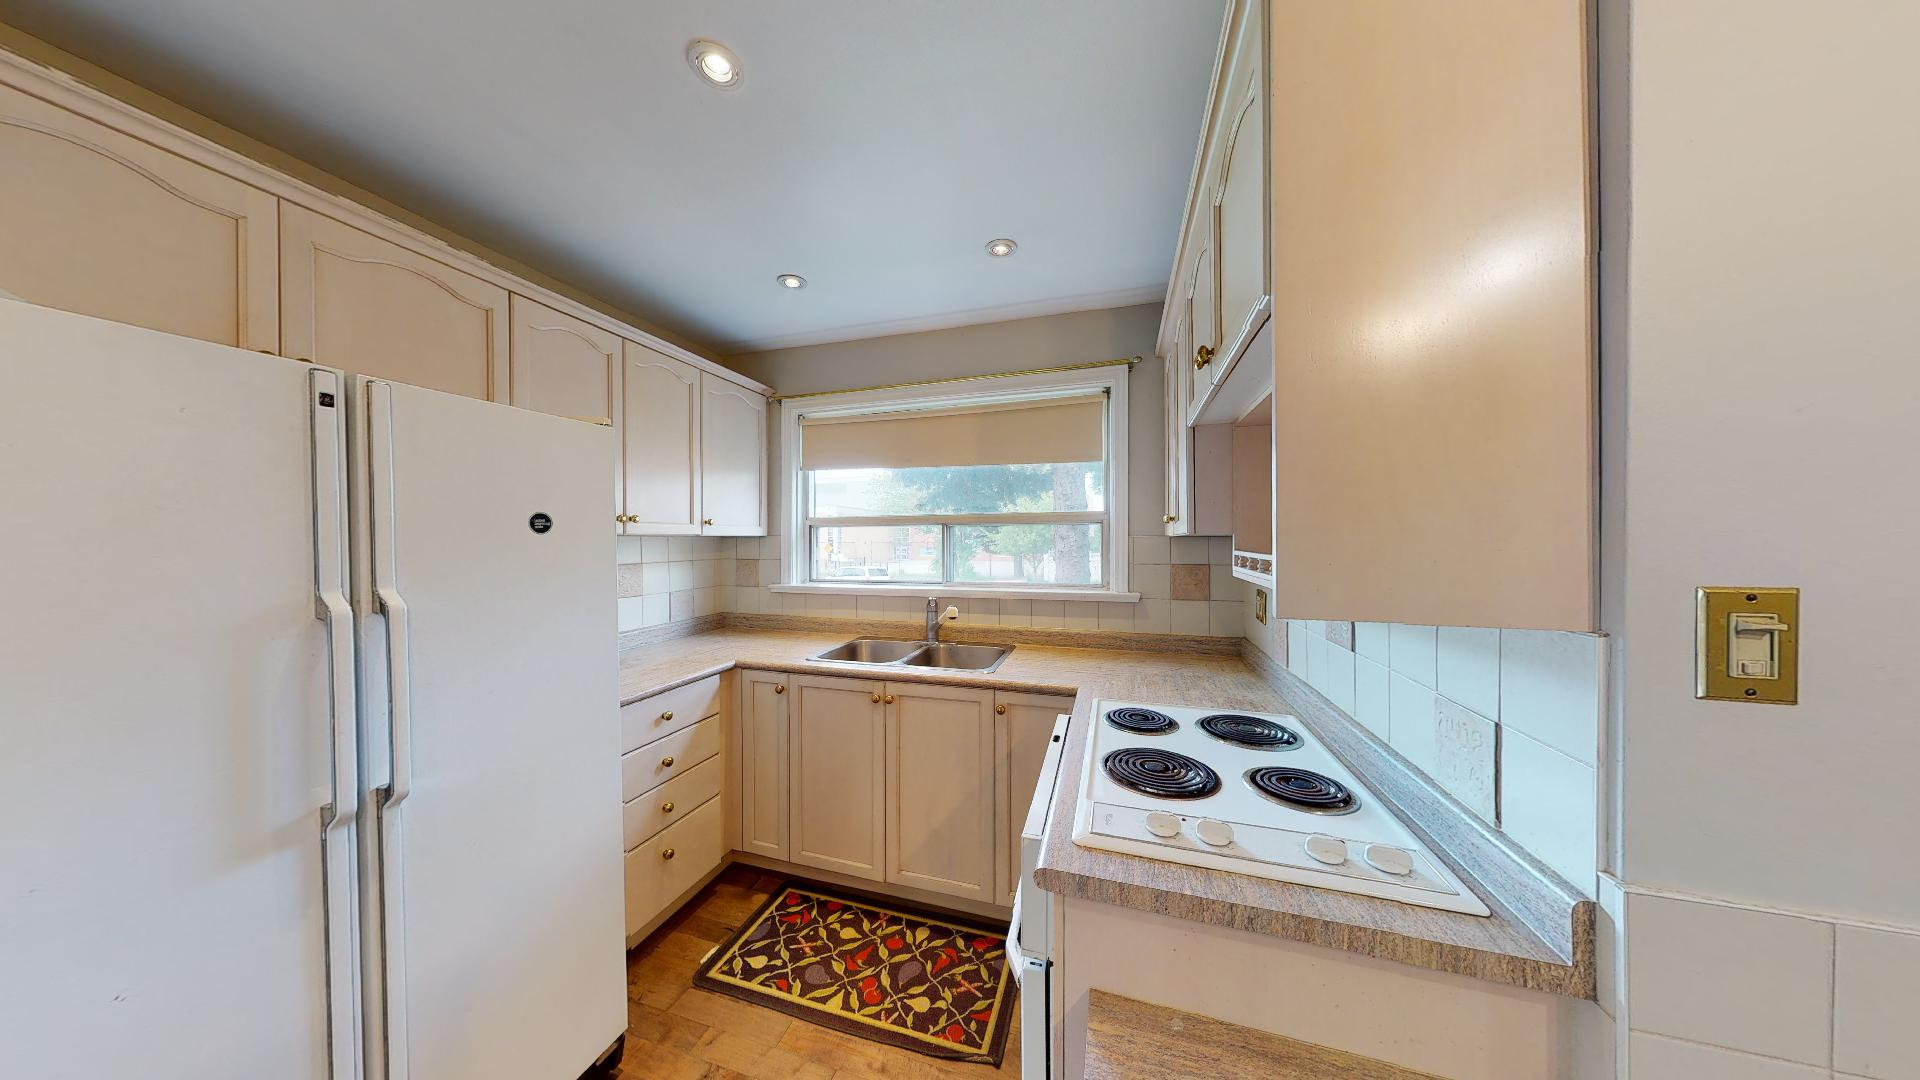 Buy Charming And Classy 3 Bedroom Home In Toronto